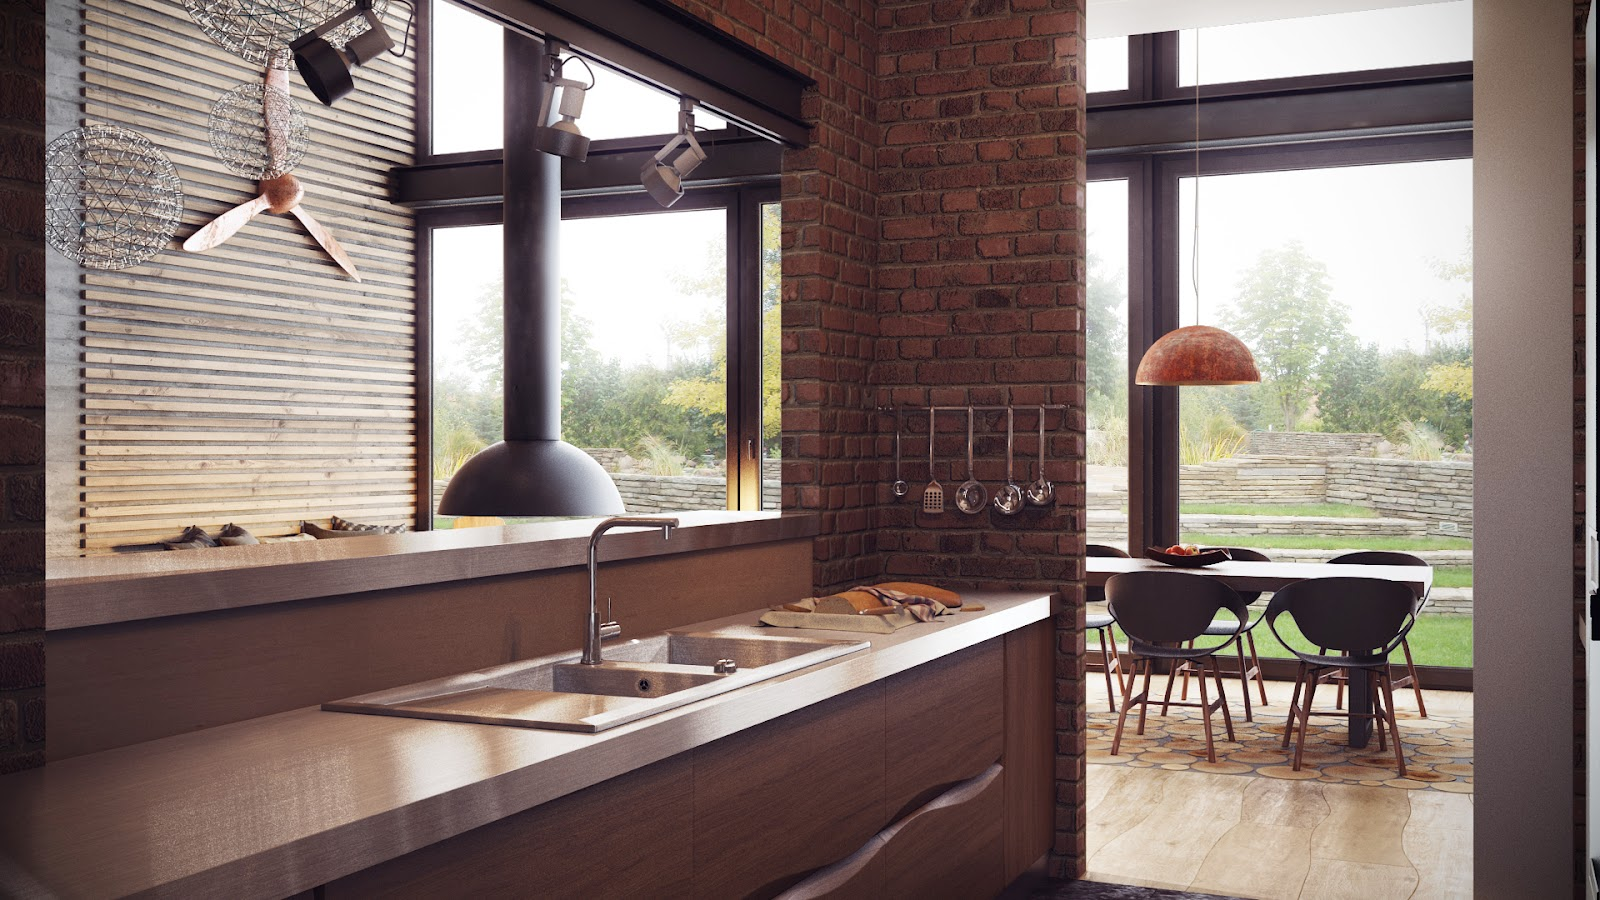 1-Sleek-kitchen-design.jpeg